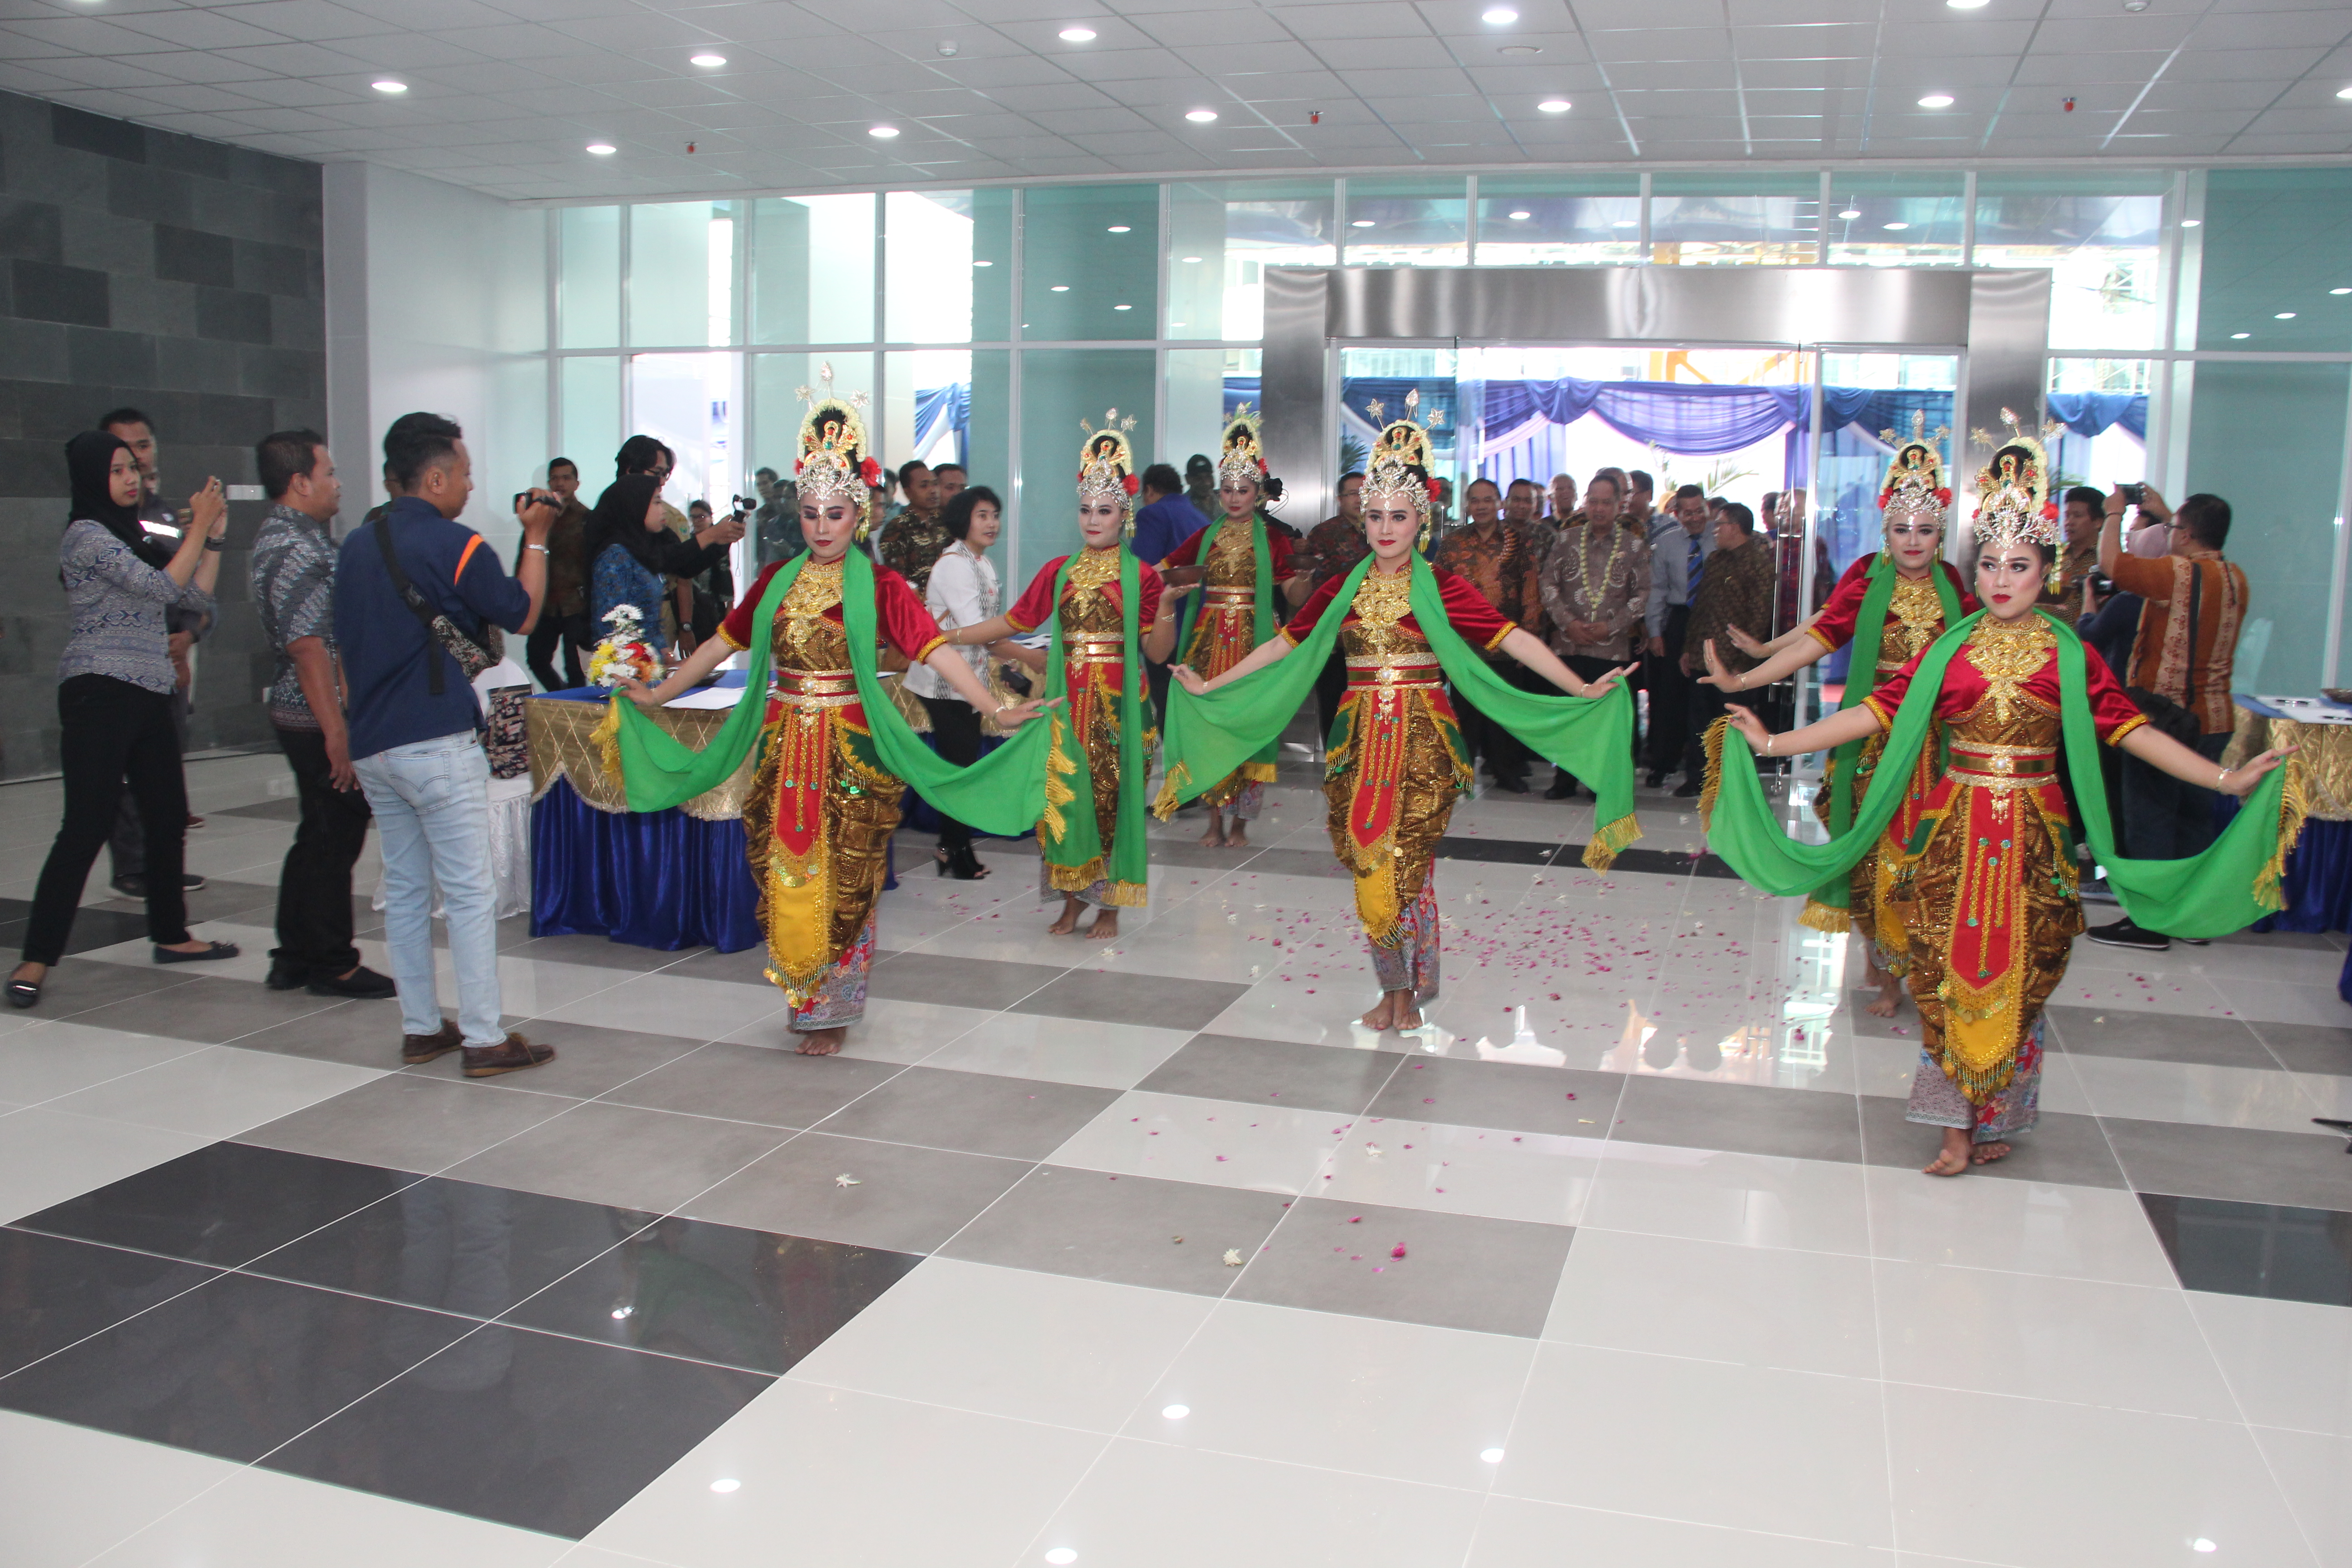 Welcoming the Minister of Research, Technology and Higher Education, accompanied by dancers